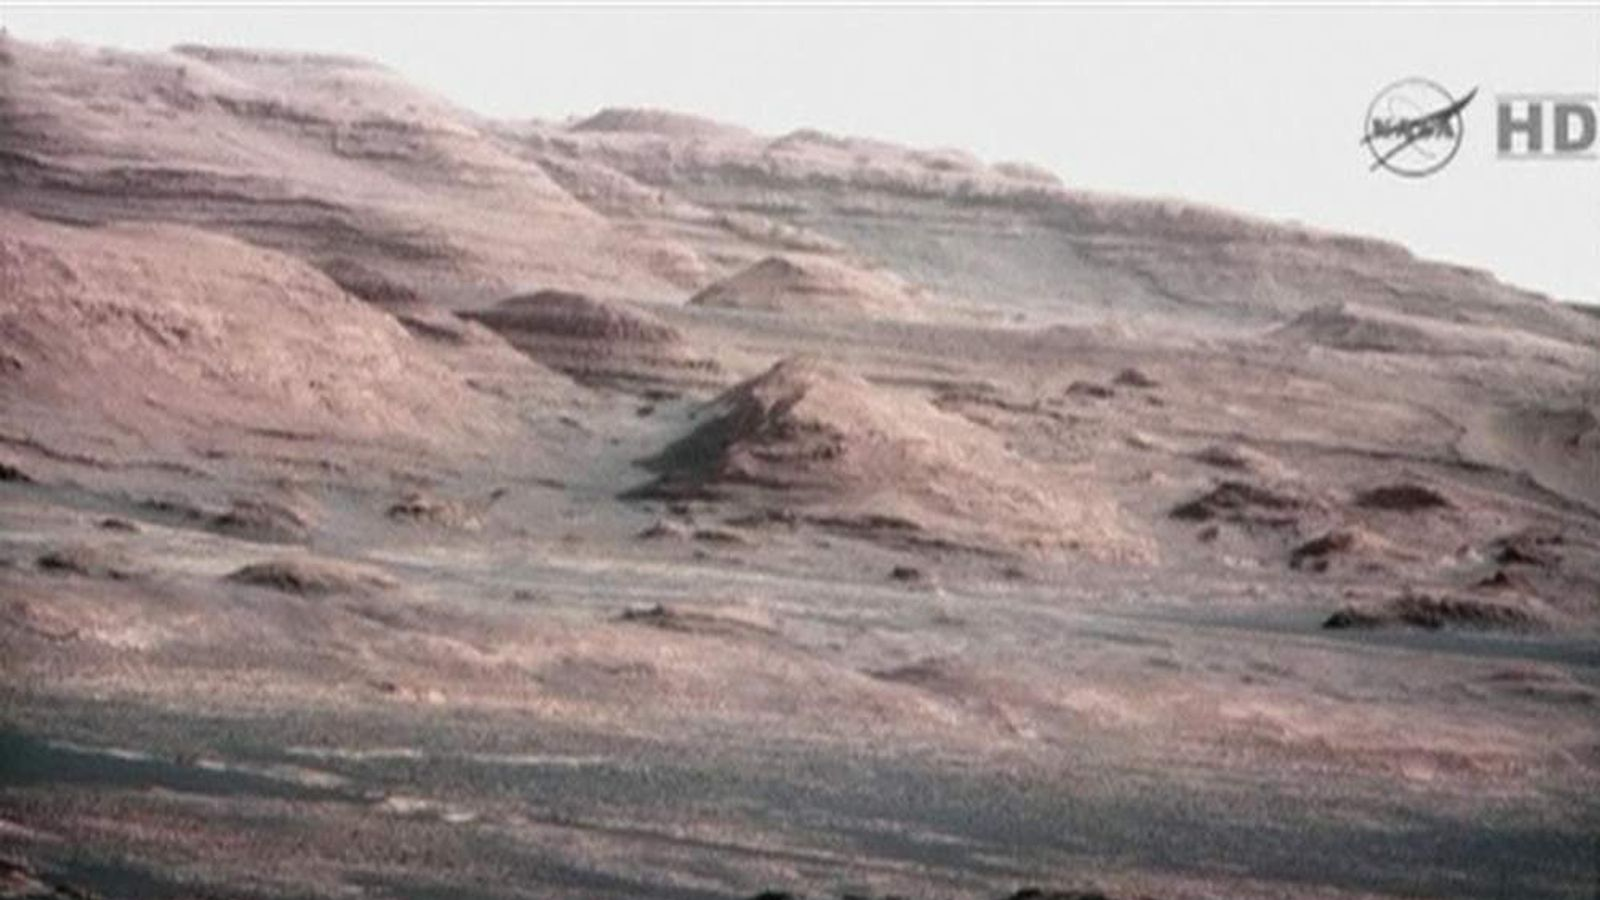 Image Released By Nasa Showing Surface Of Mars By Rover Curiosity